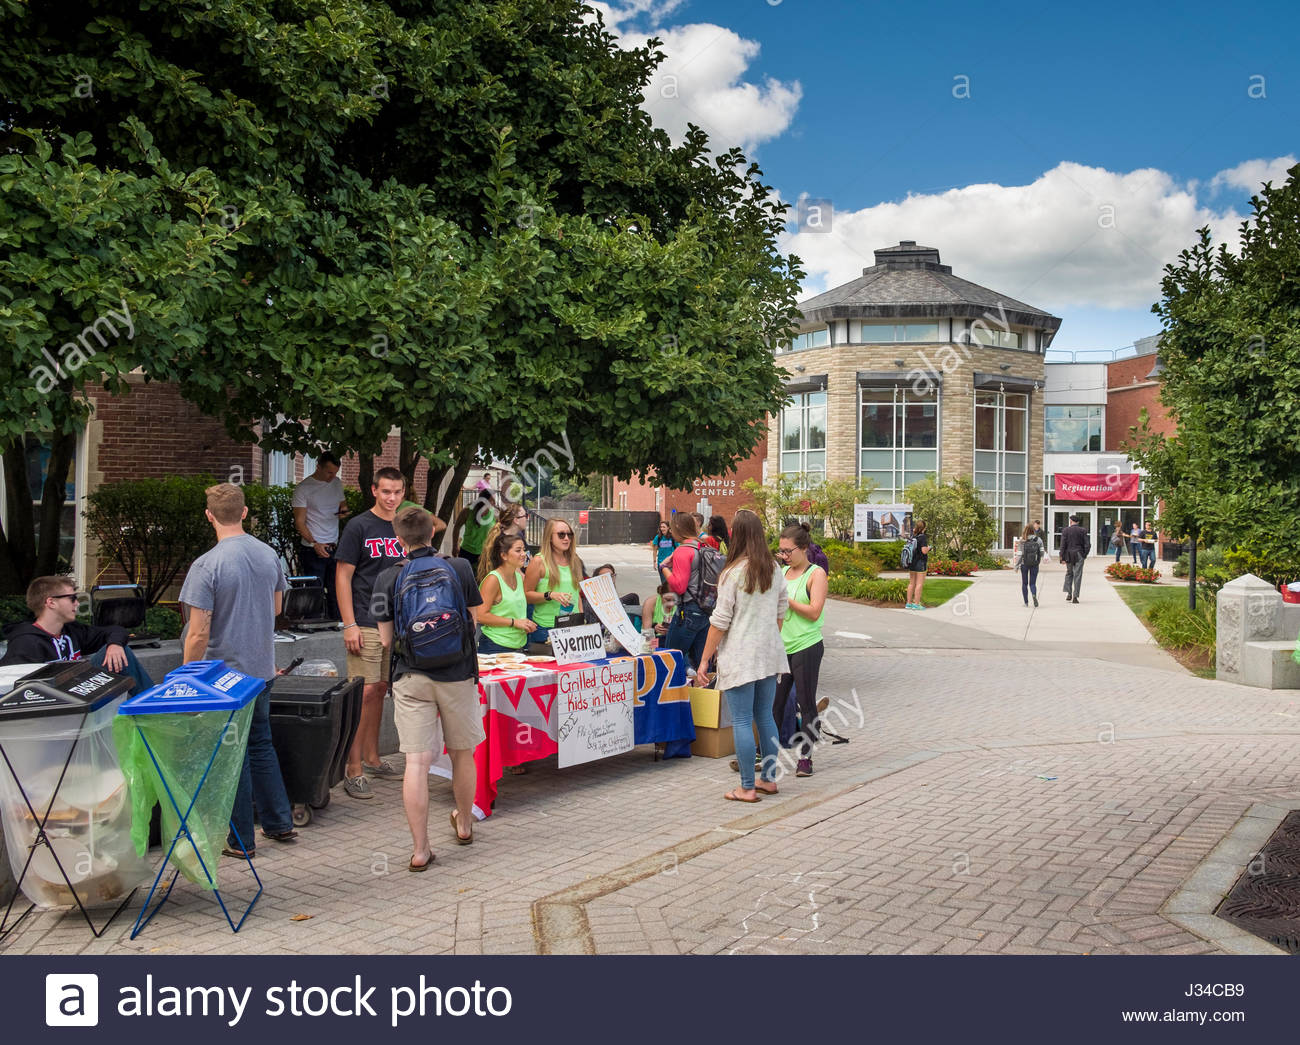 Student sorority having a benefit at Freeman & Reunion Plazas on the campus of Worcester Polytechnic Institute, - Stock Image